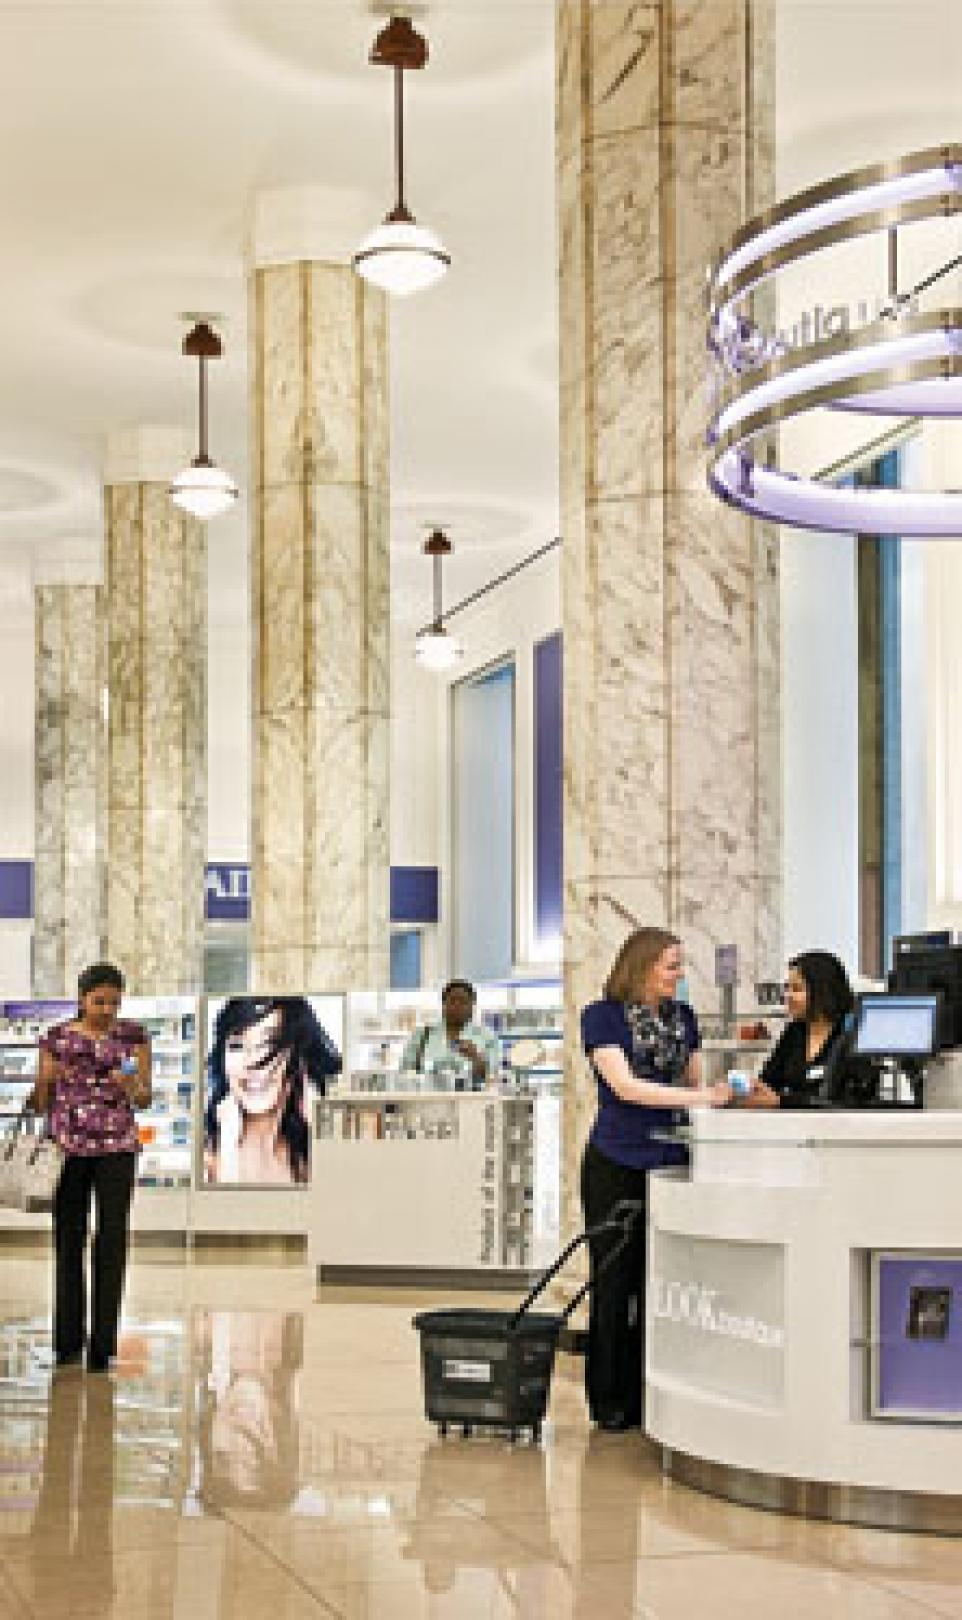 Picture of the grand reception area at Duane Reade's flagship store in New York